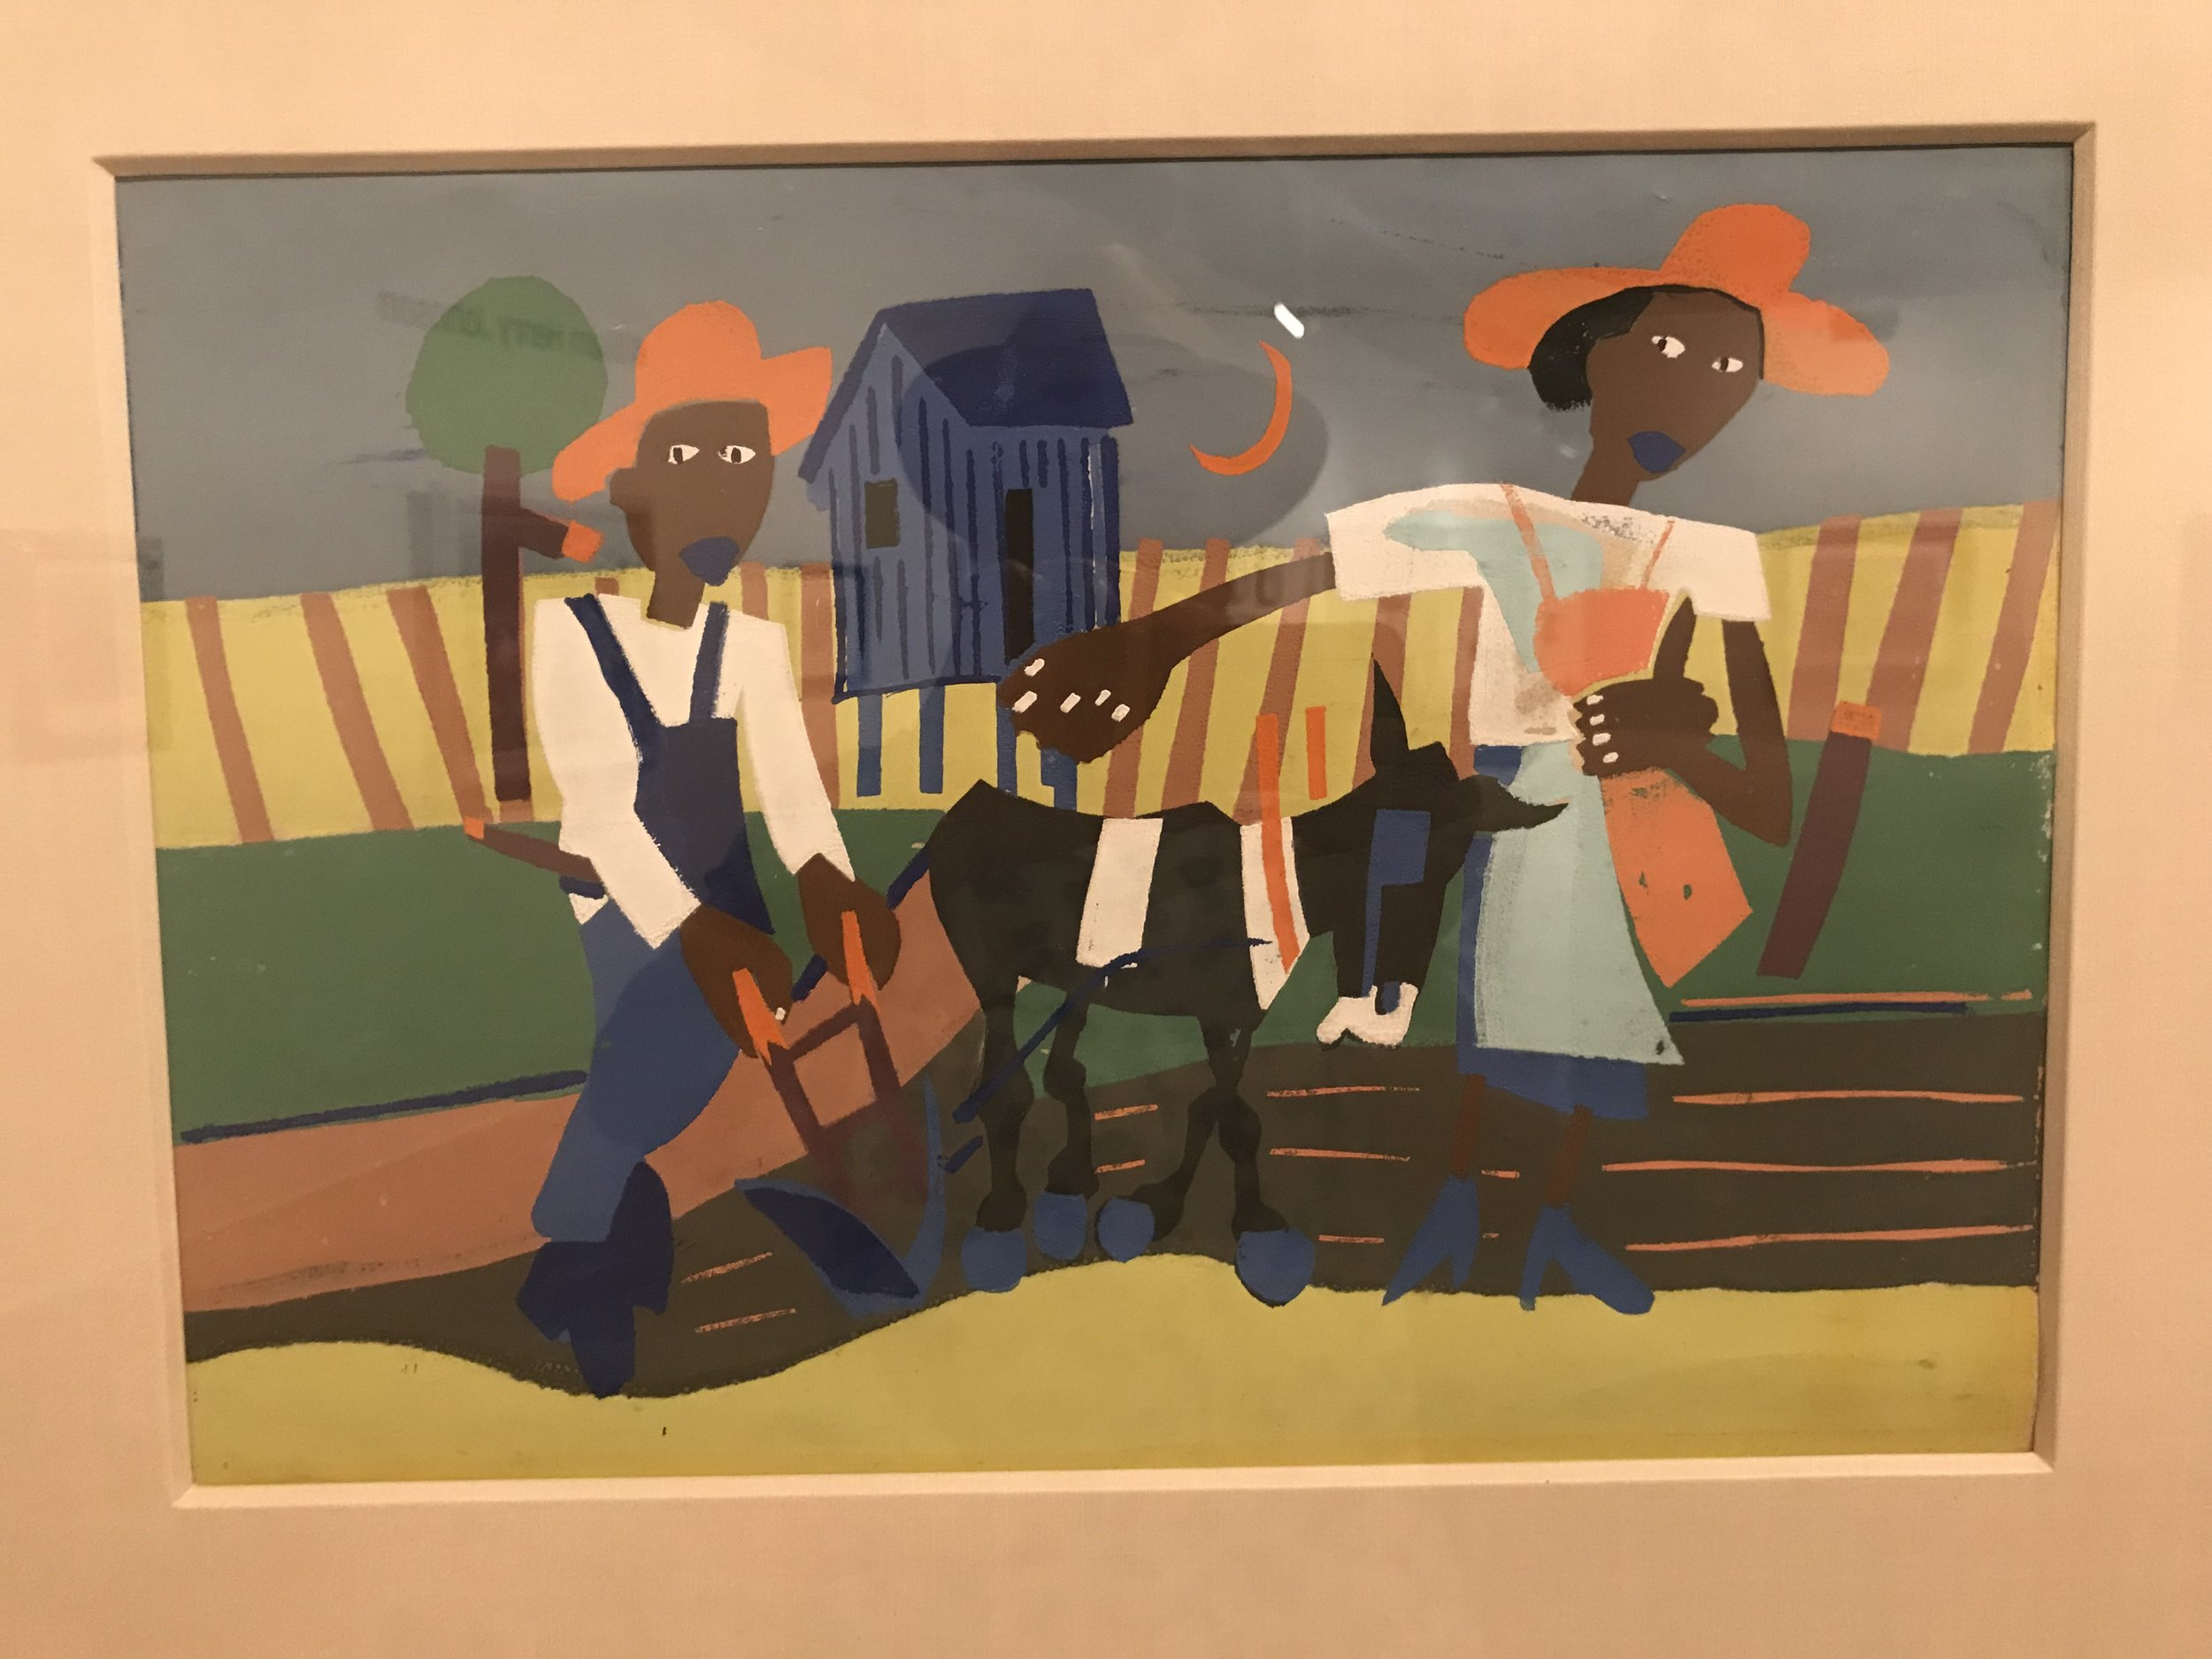 Johnson: Sowing (1940), silkscreen on paper